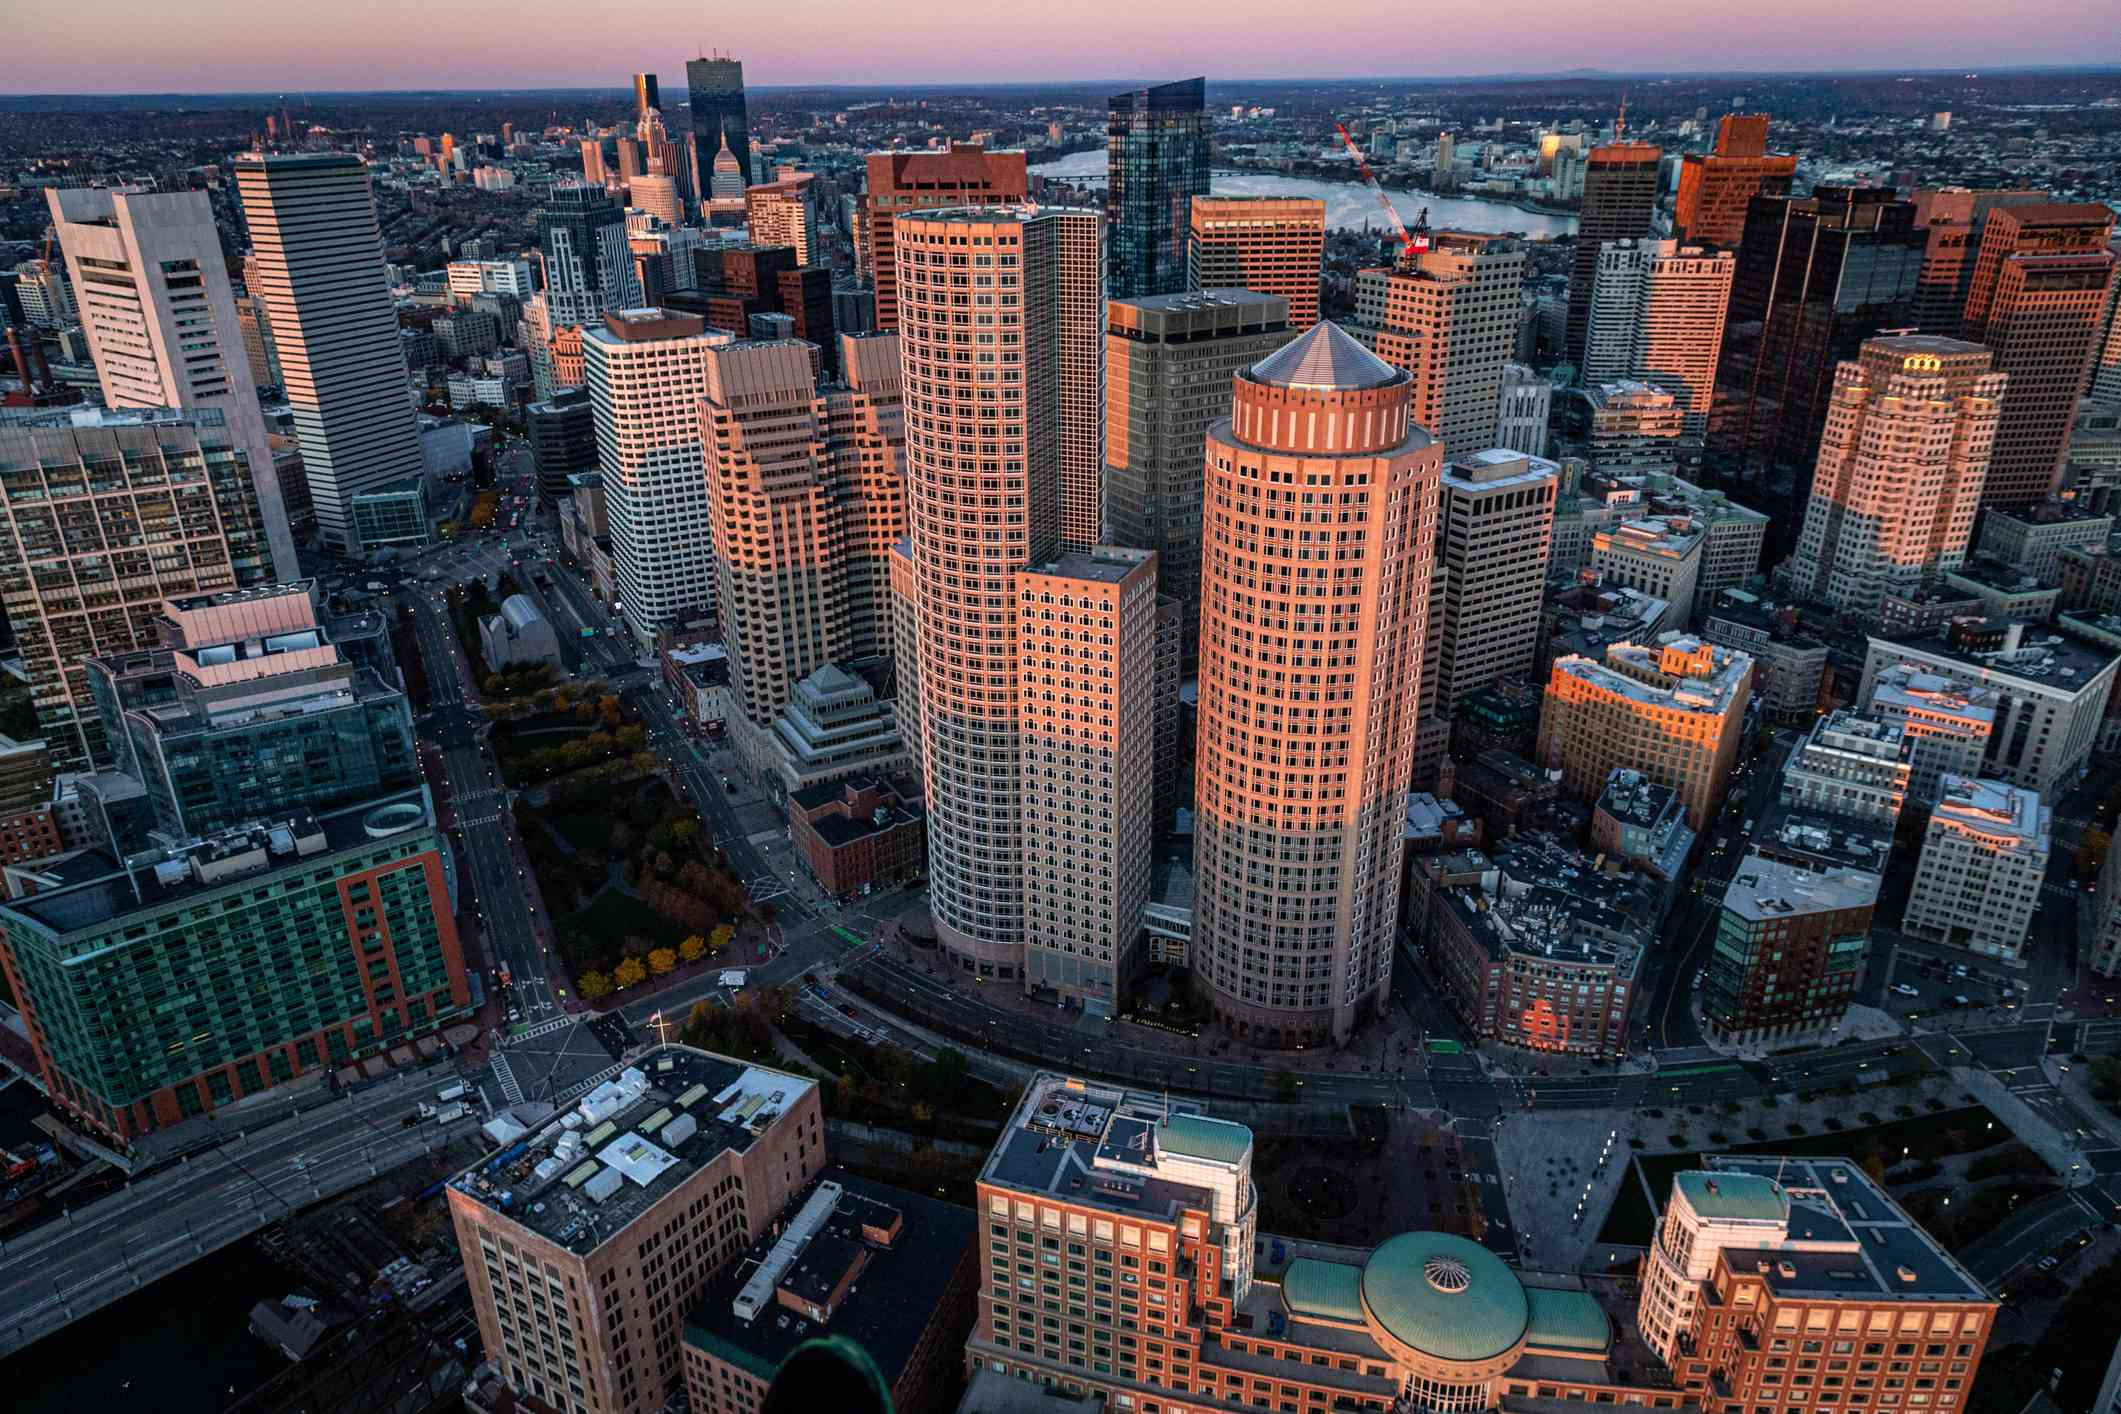 Aerial view of Boston skyscrapers at sunrise